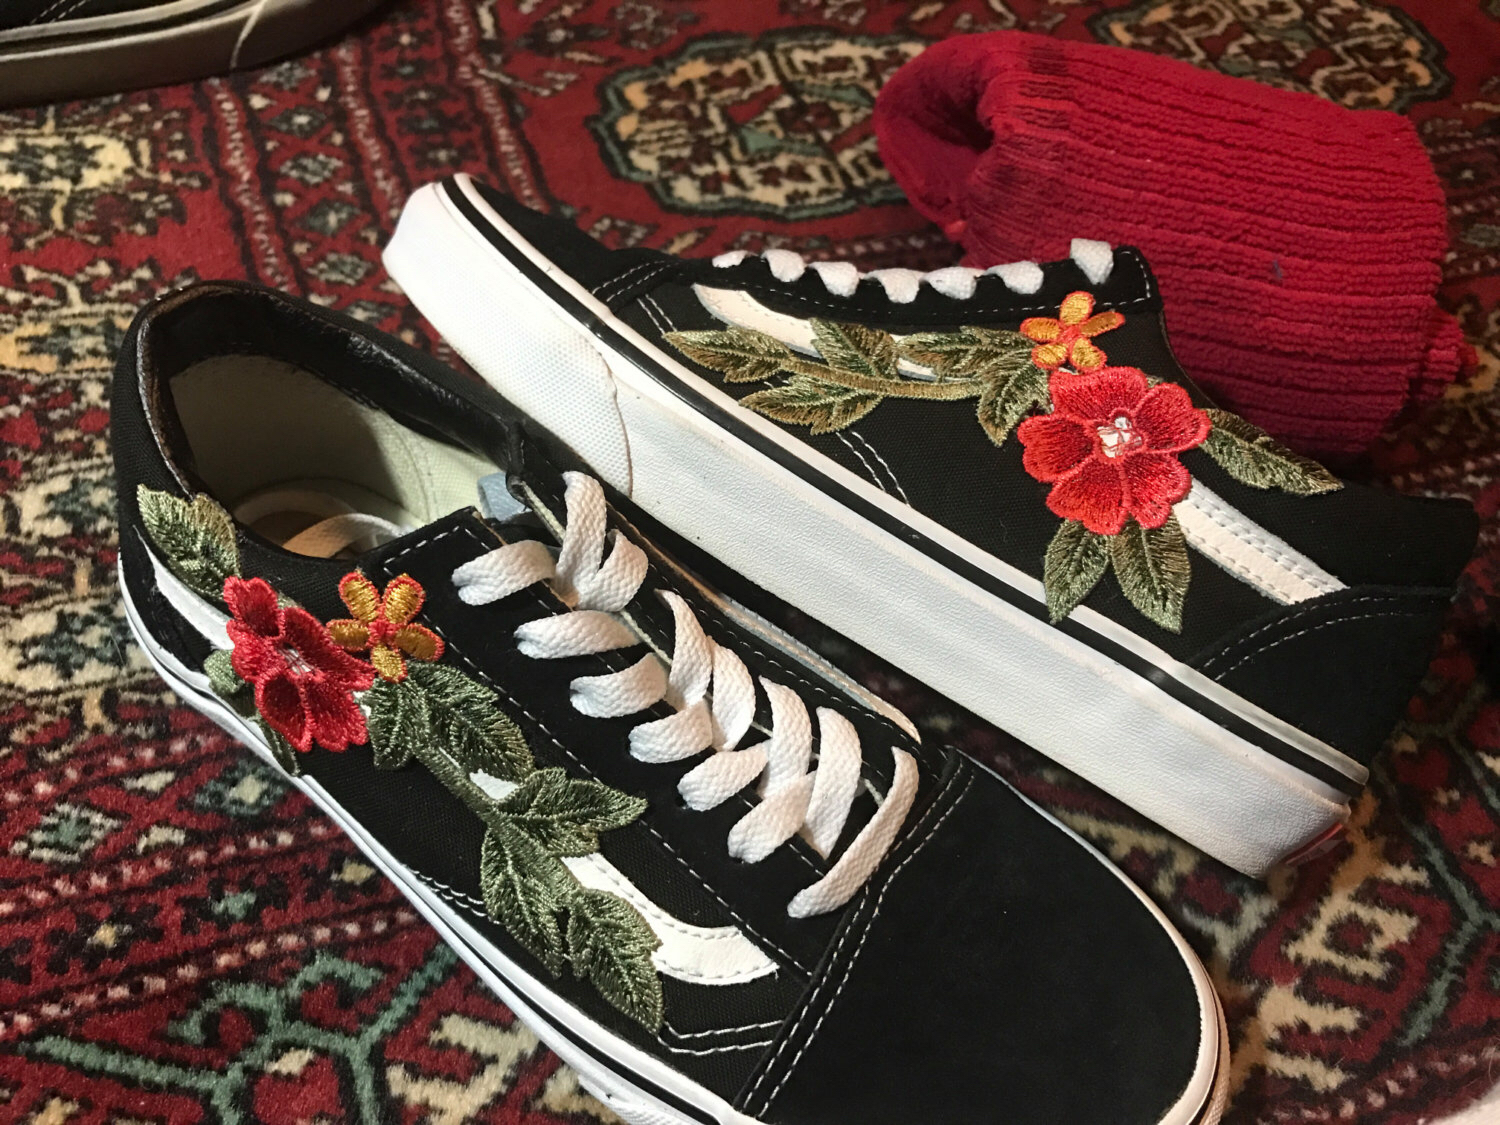 Drawn vans rose Custom Sk8 or Skool vans